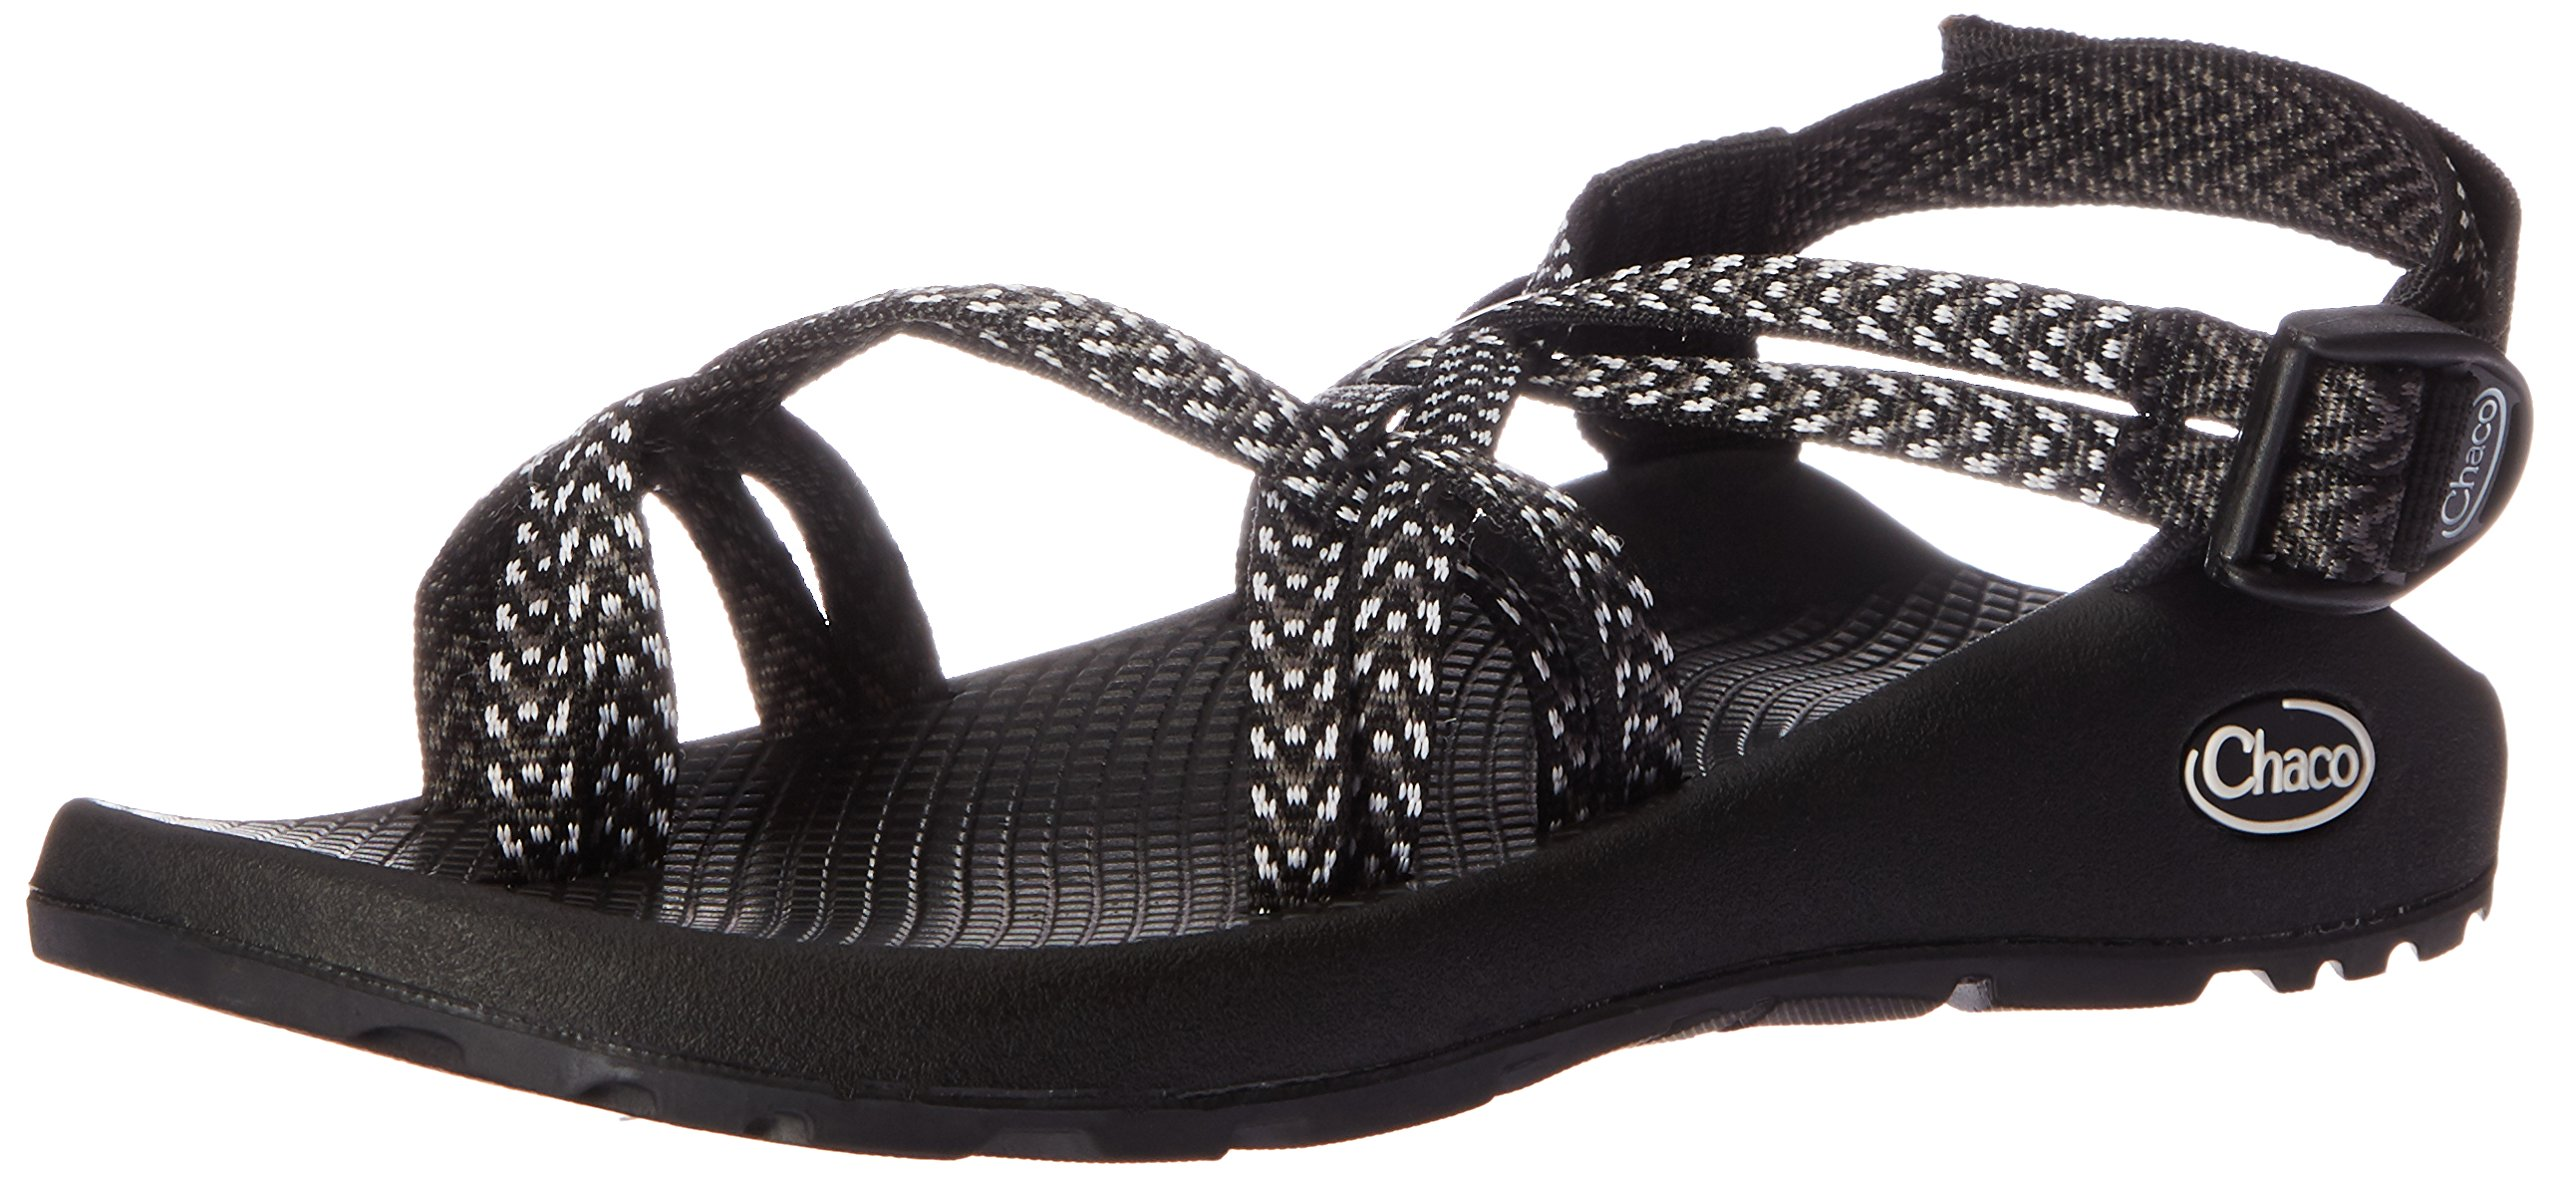 Chaco Women's ZX2 Classic Athletic Sandal, Boost Black, 8 M US by Chaco